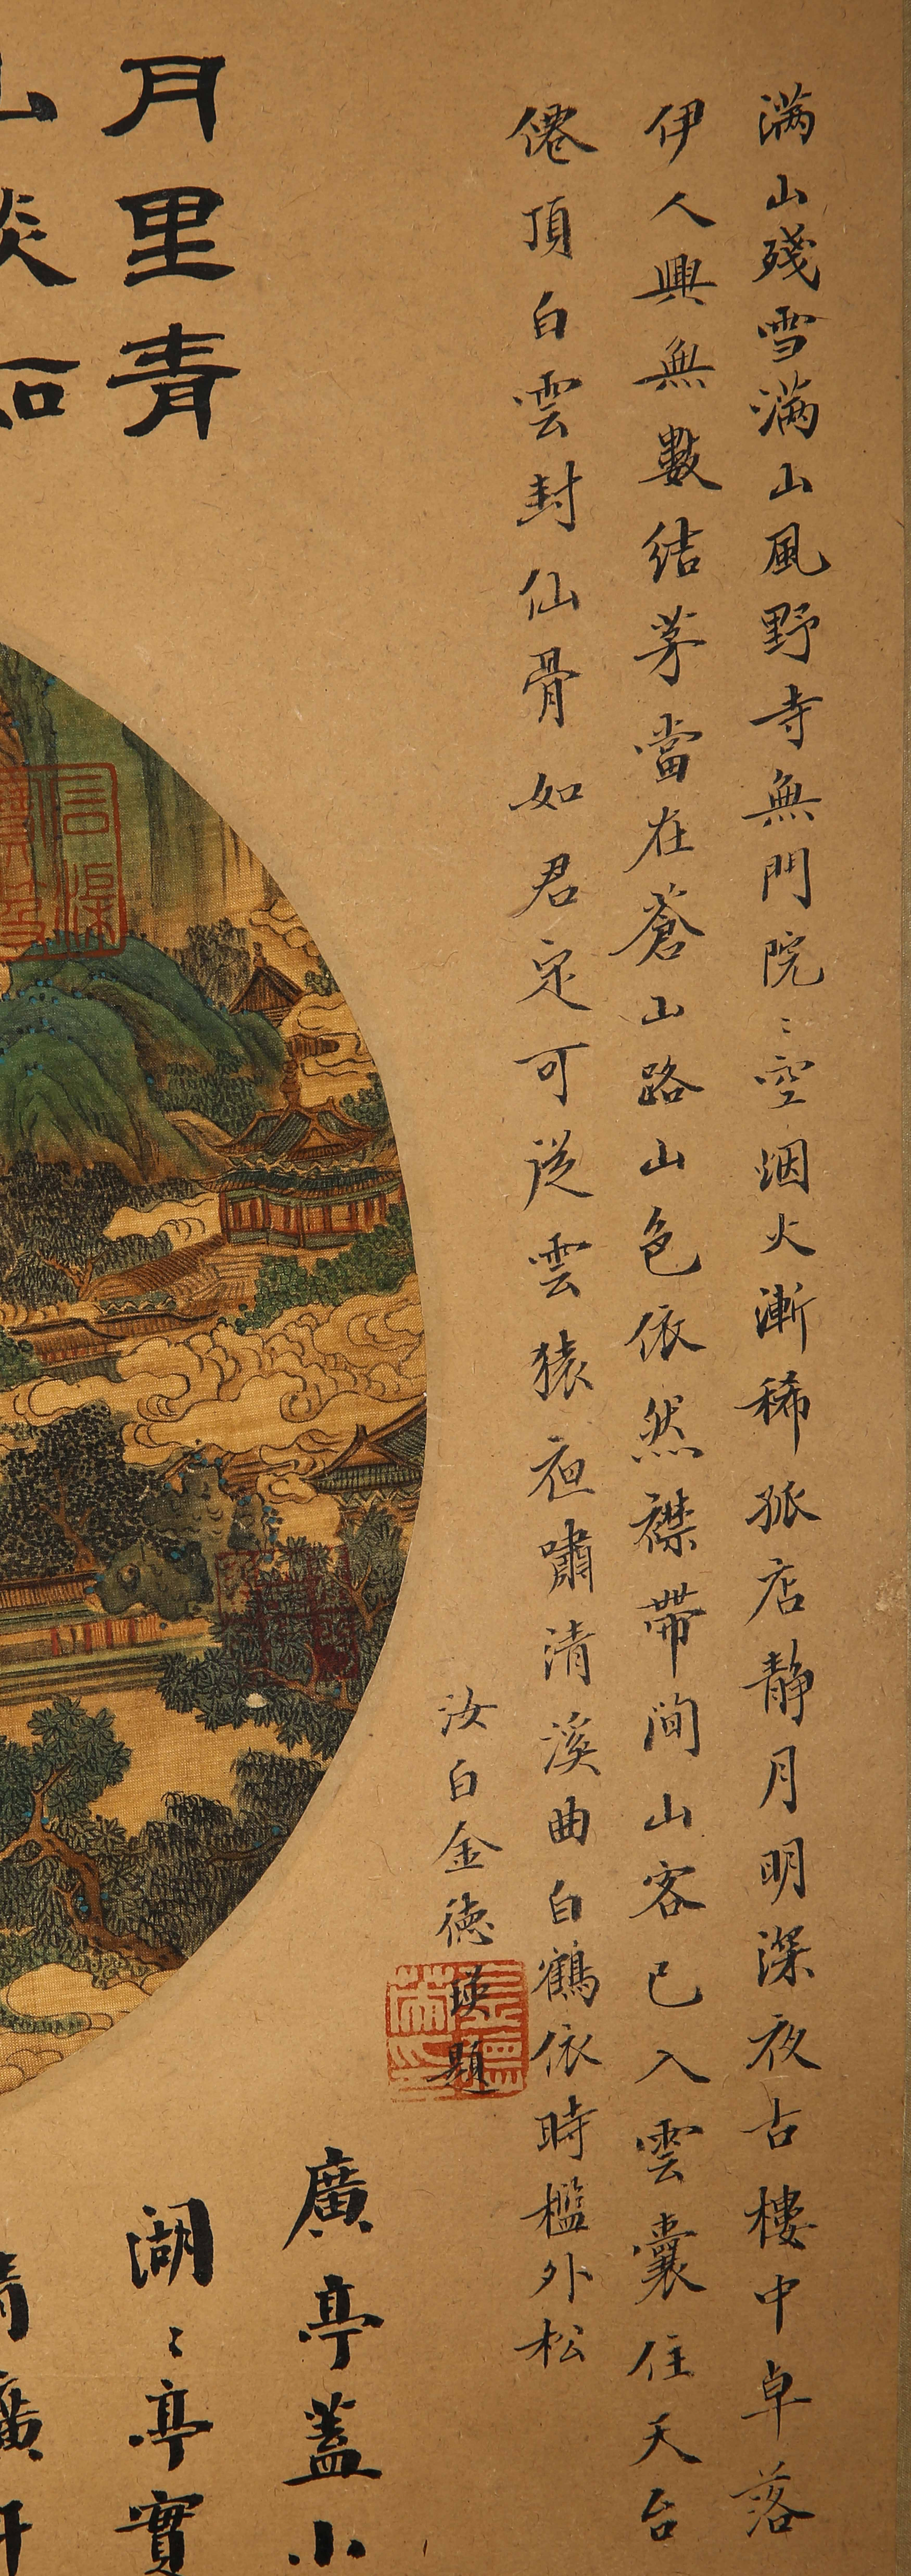 PAINTING AND CALLIGRAPHY 'CITYSCAPE', CHINA - Image 7 of 9